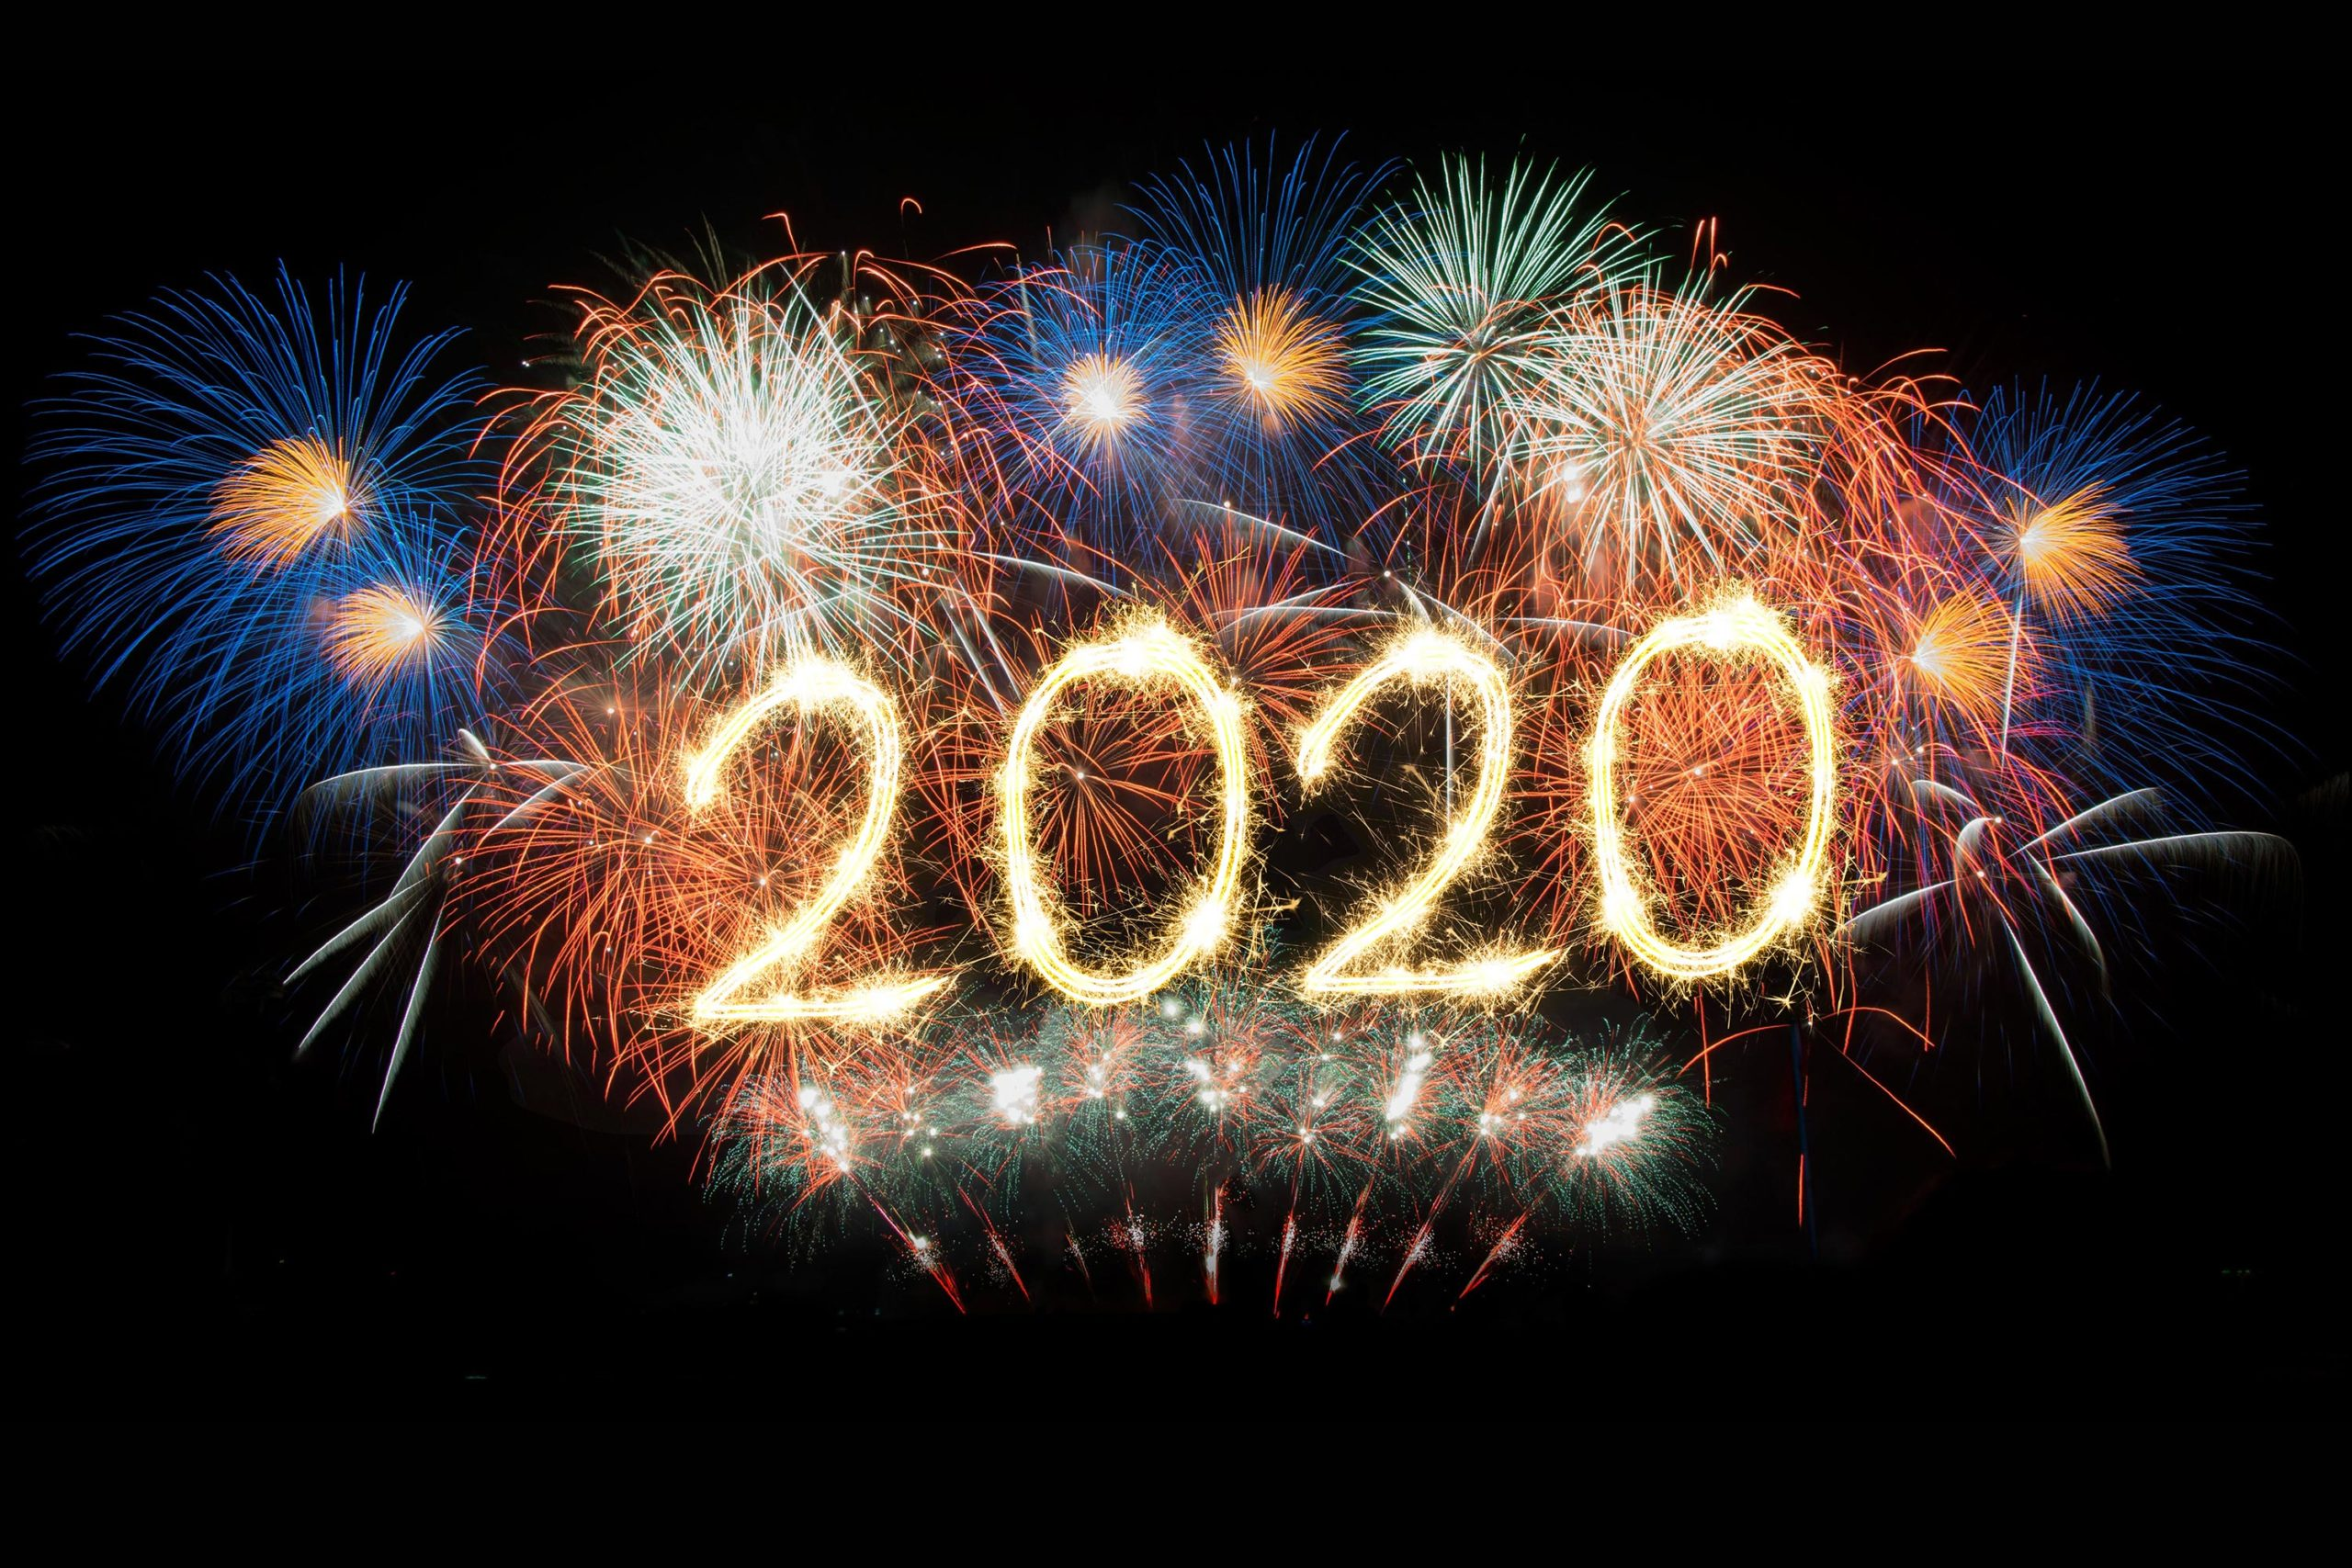 14 Fireworks Happy New Year 2020 Wallpapers High Quality Pictures 2560x1707